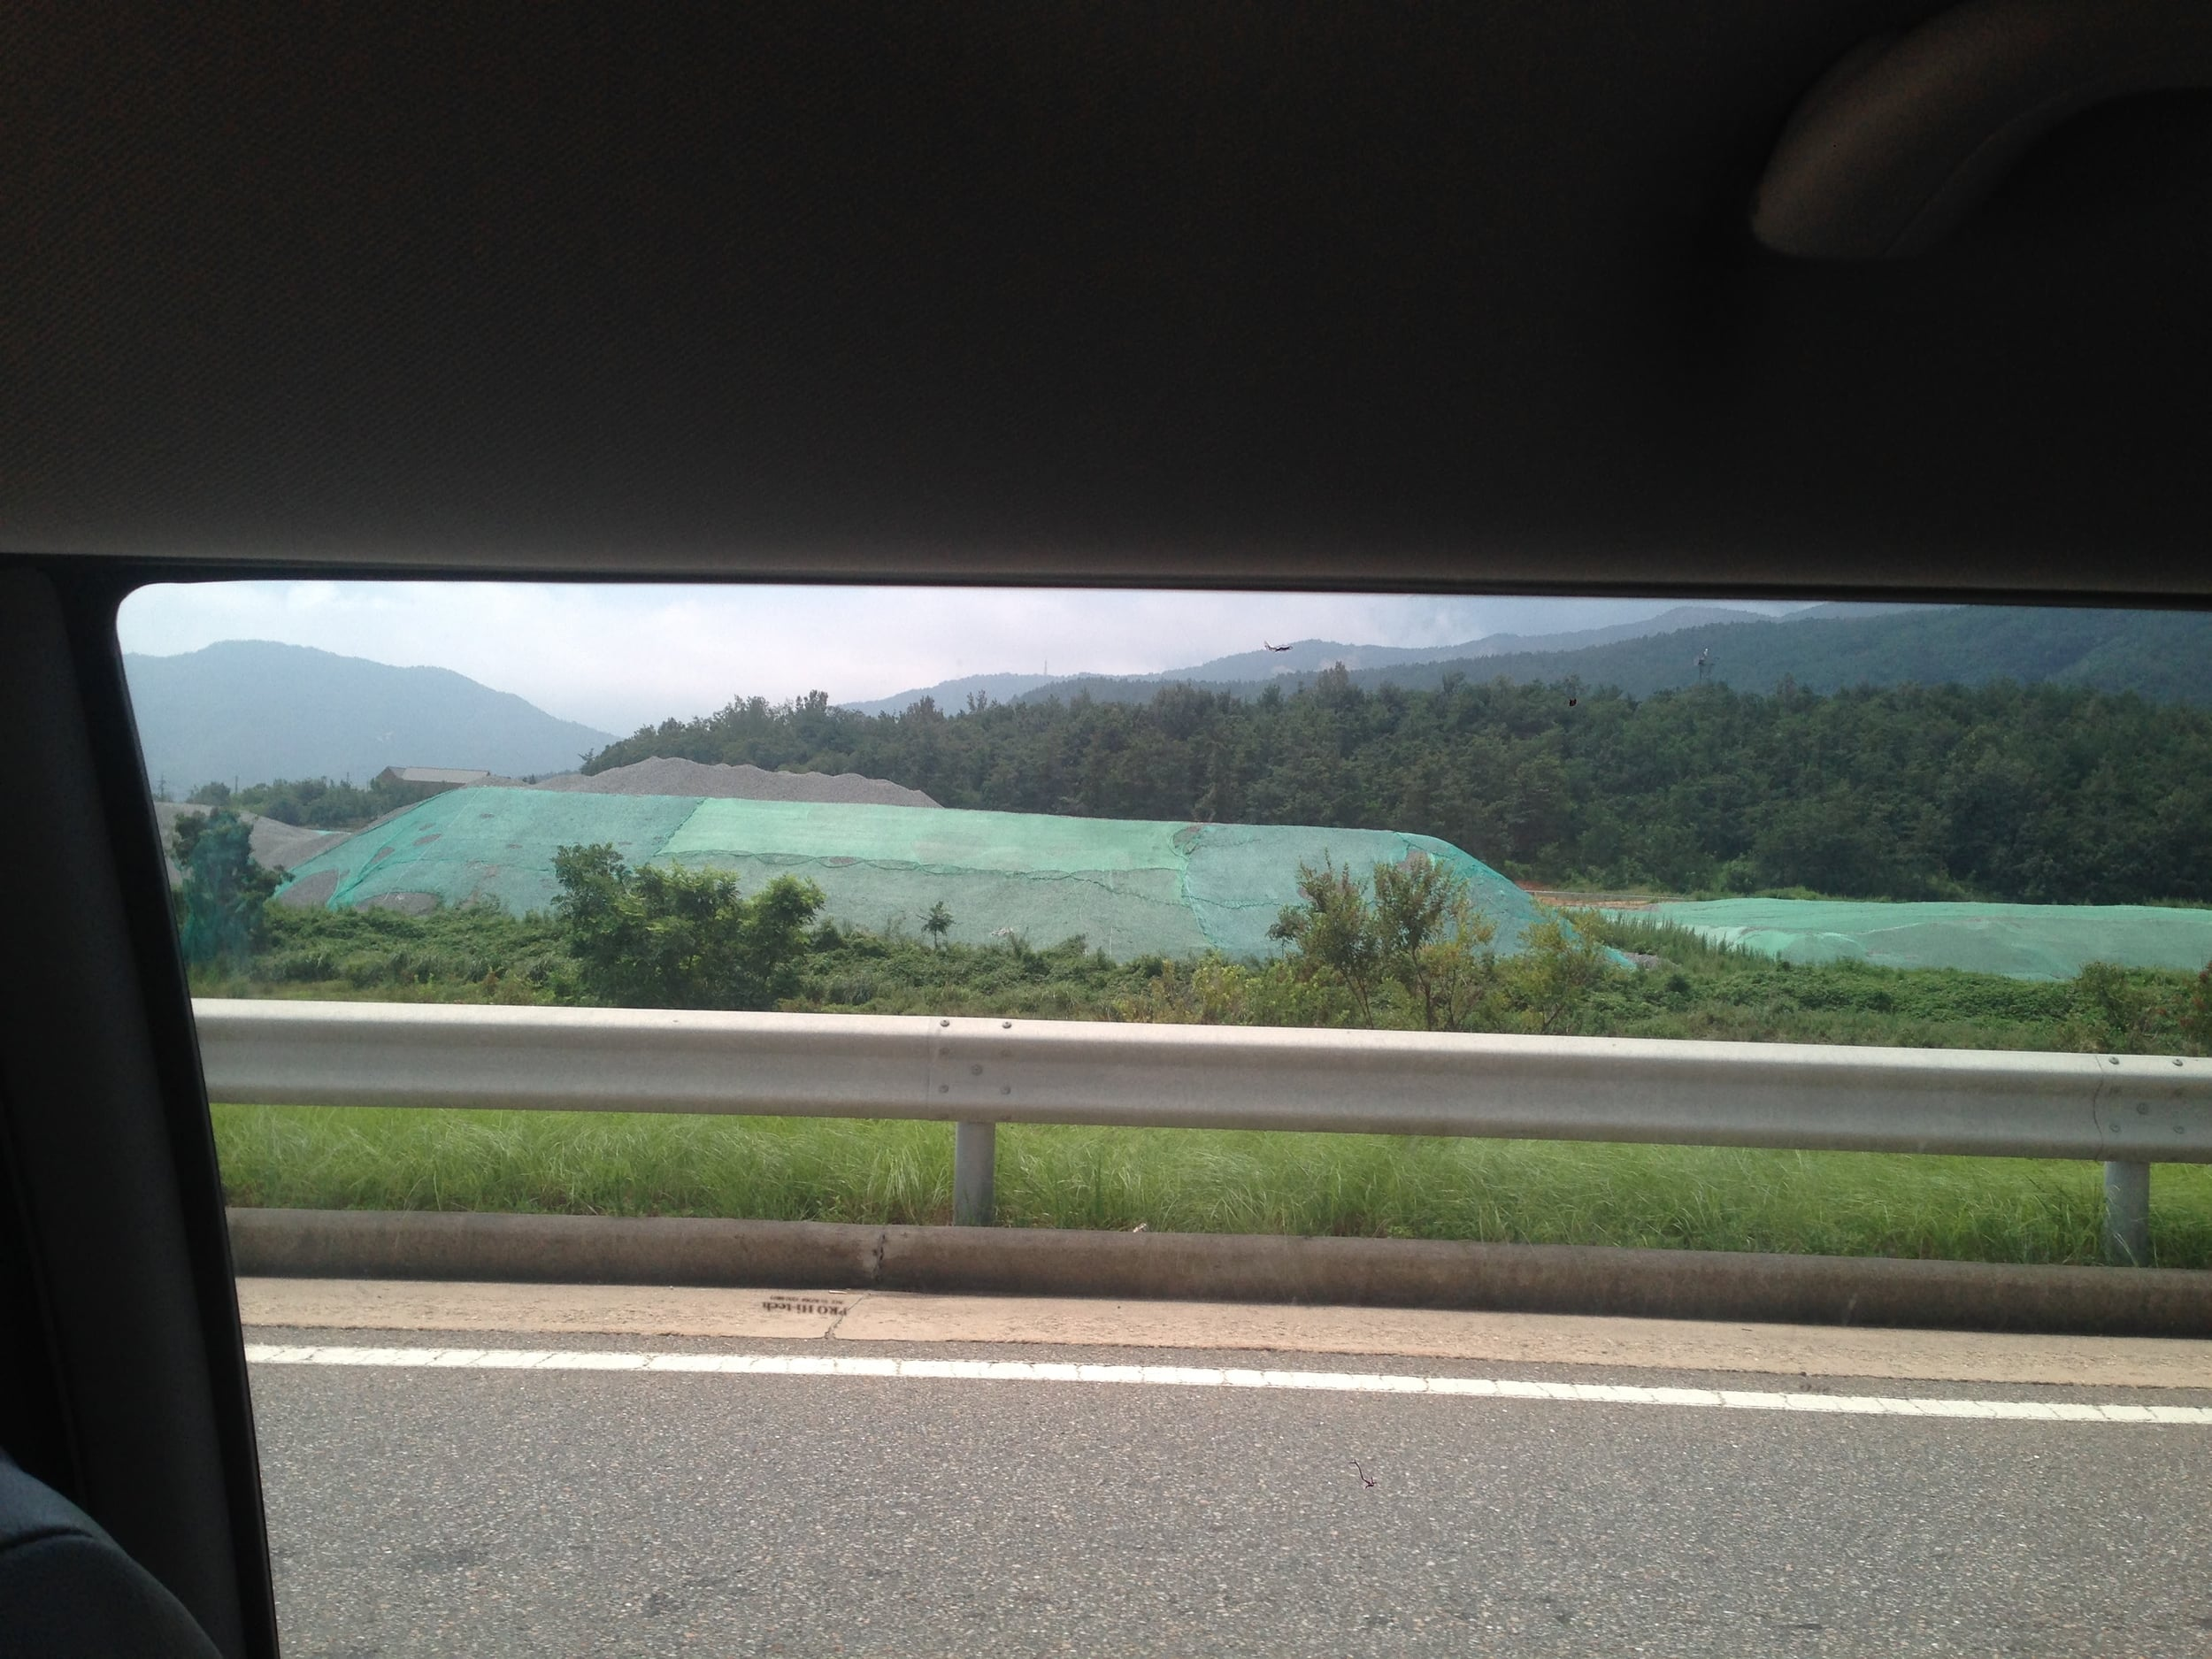 You can see the highway construction under the green tarp.